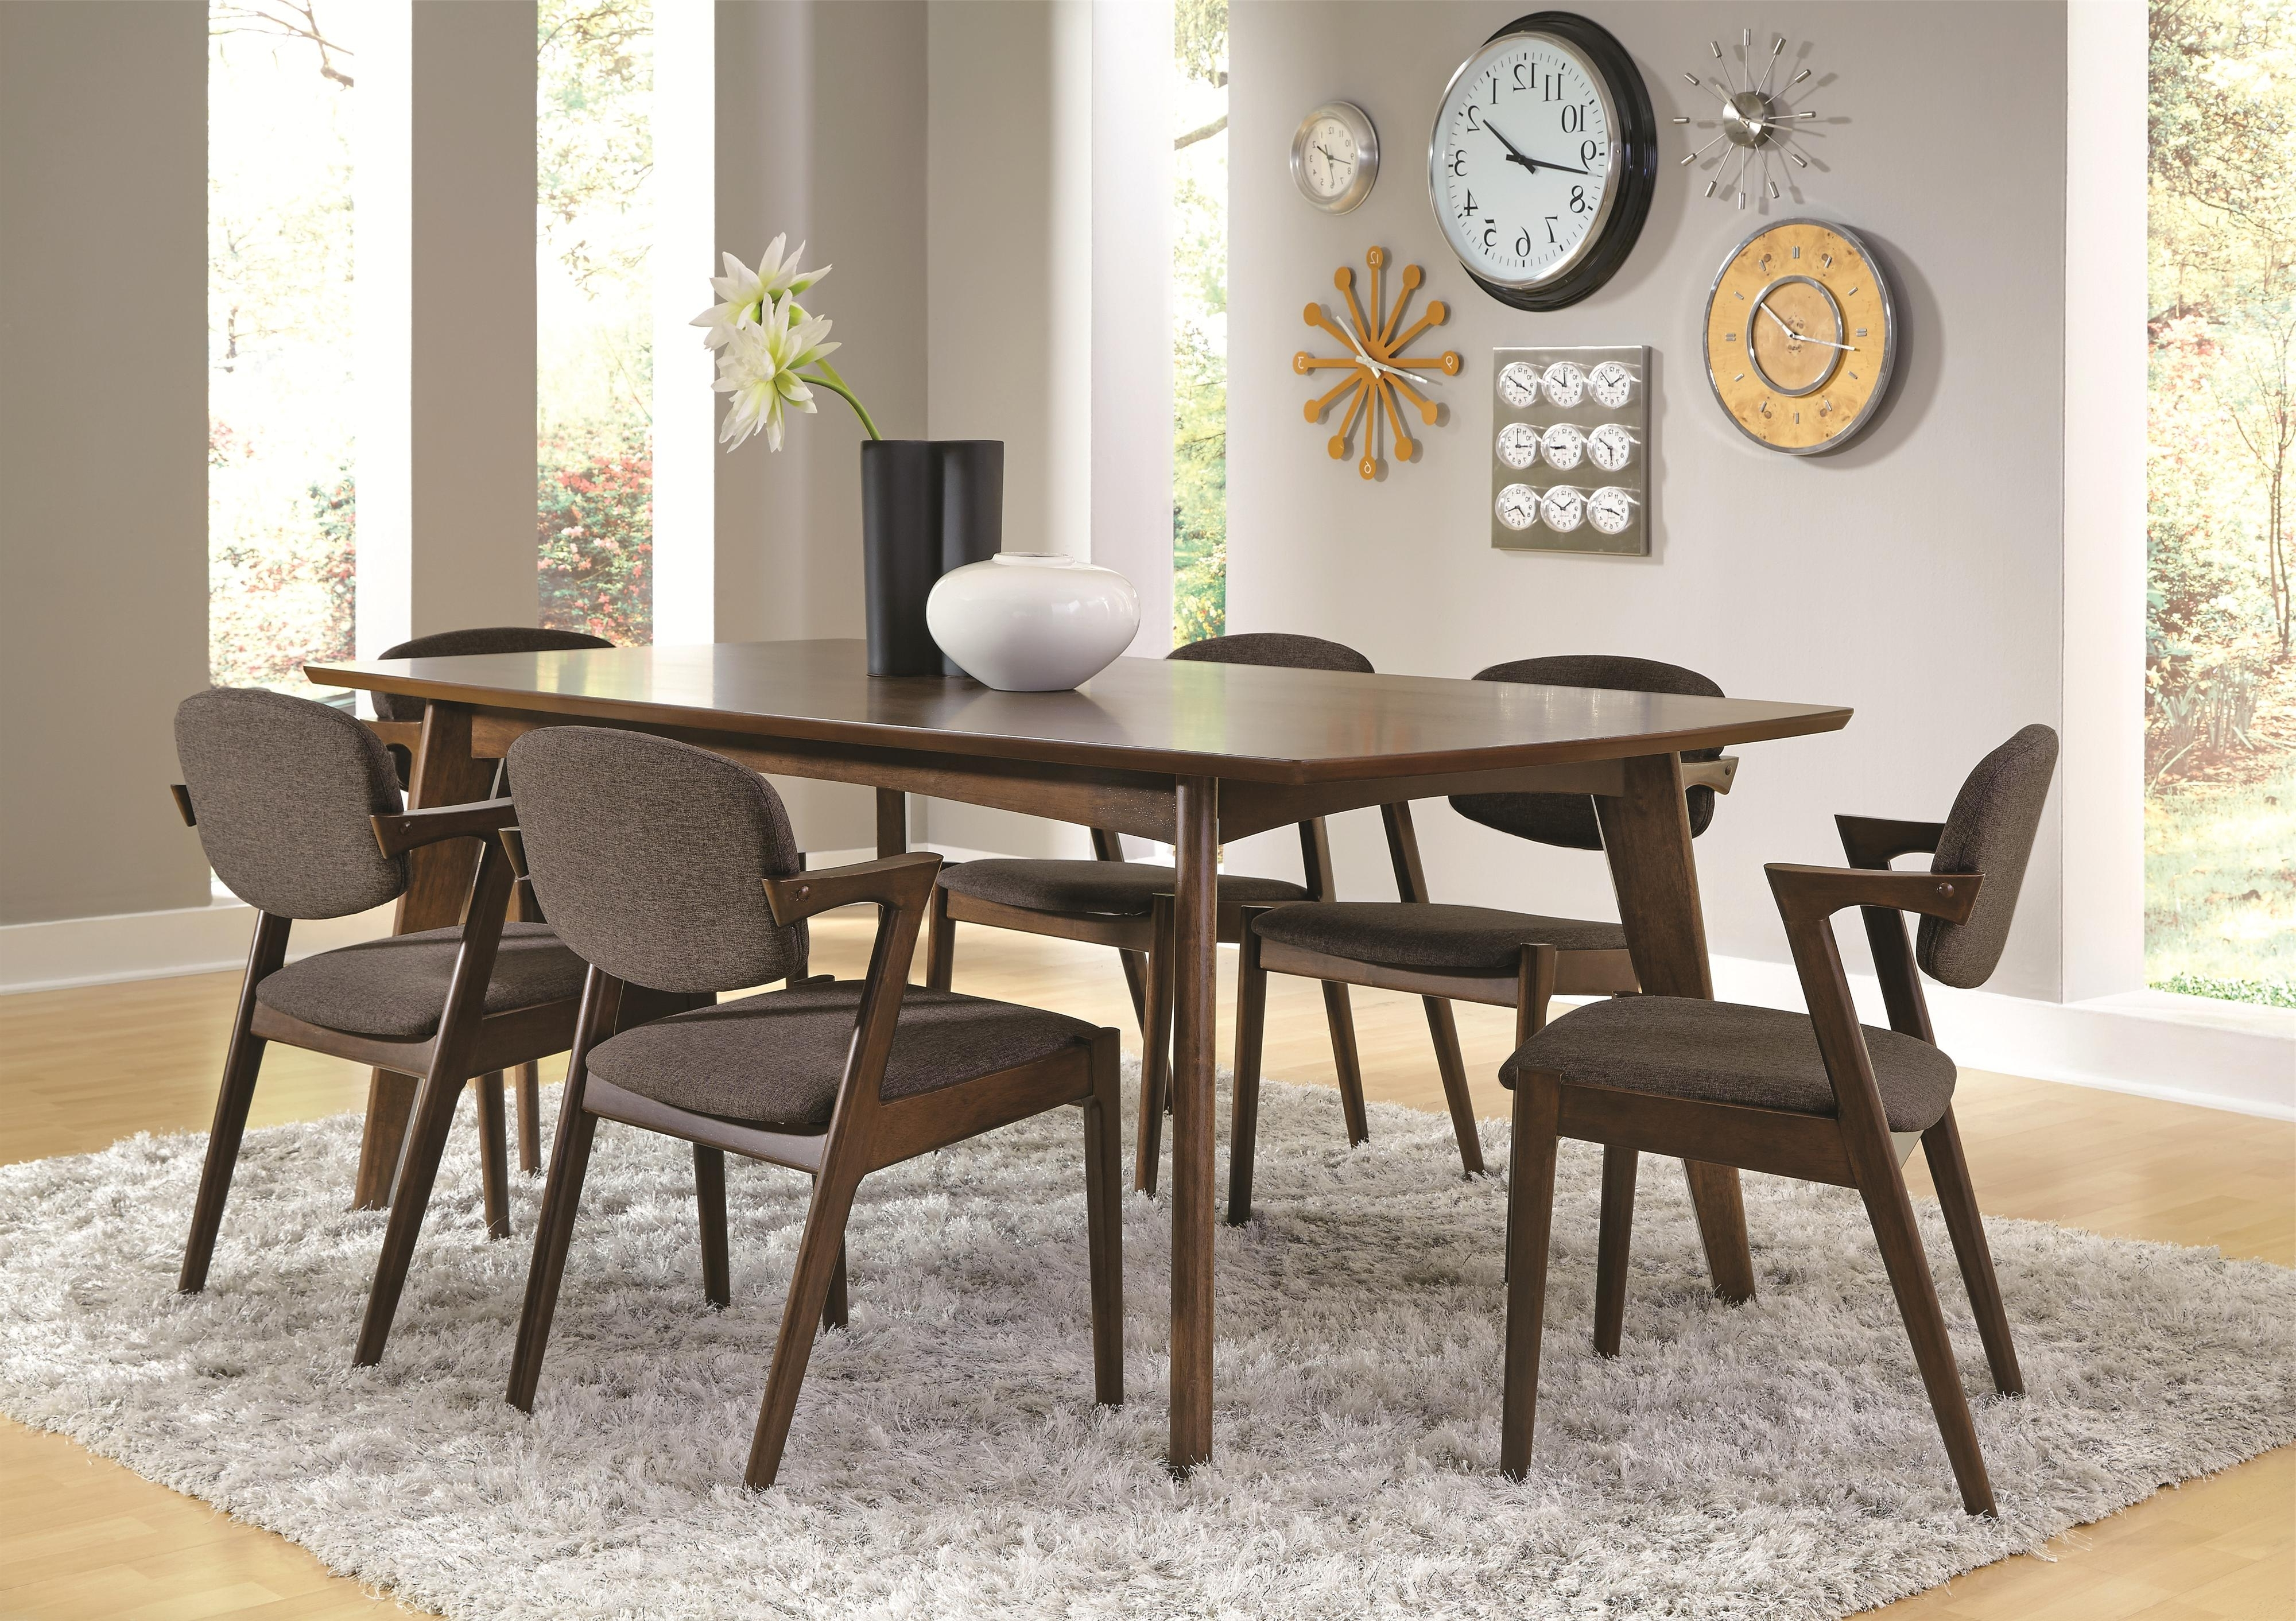 Contemporary Dining Tables Sets Inside Preferred Modern Dining Room Sets And Chairs (View 17 of 25)